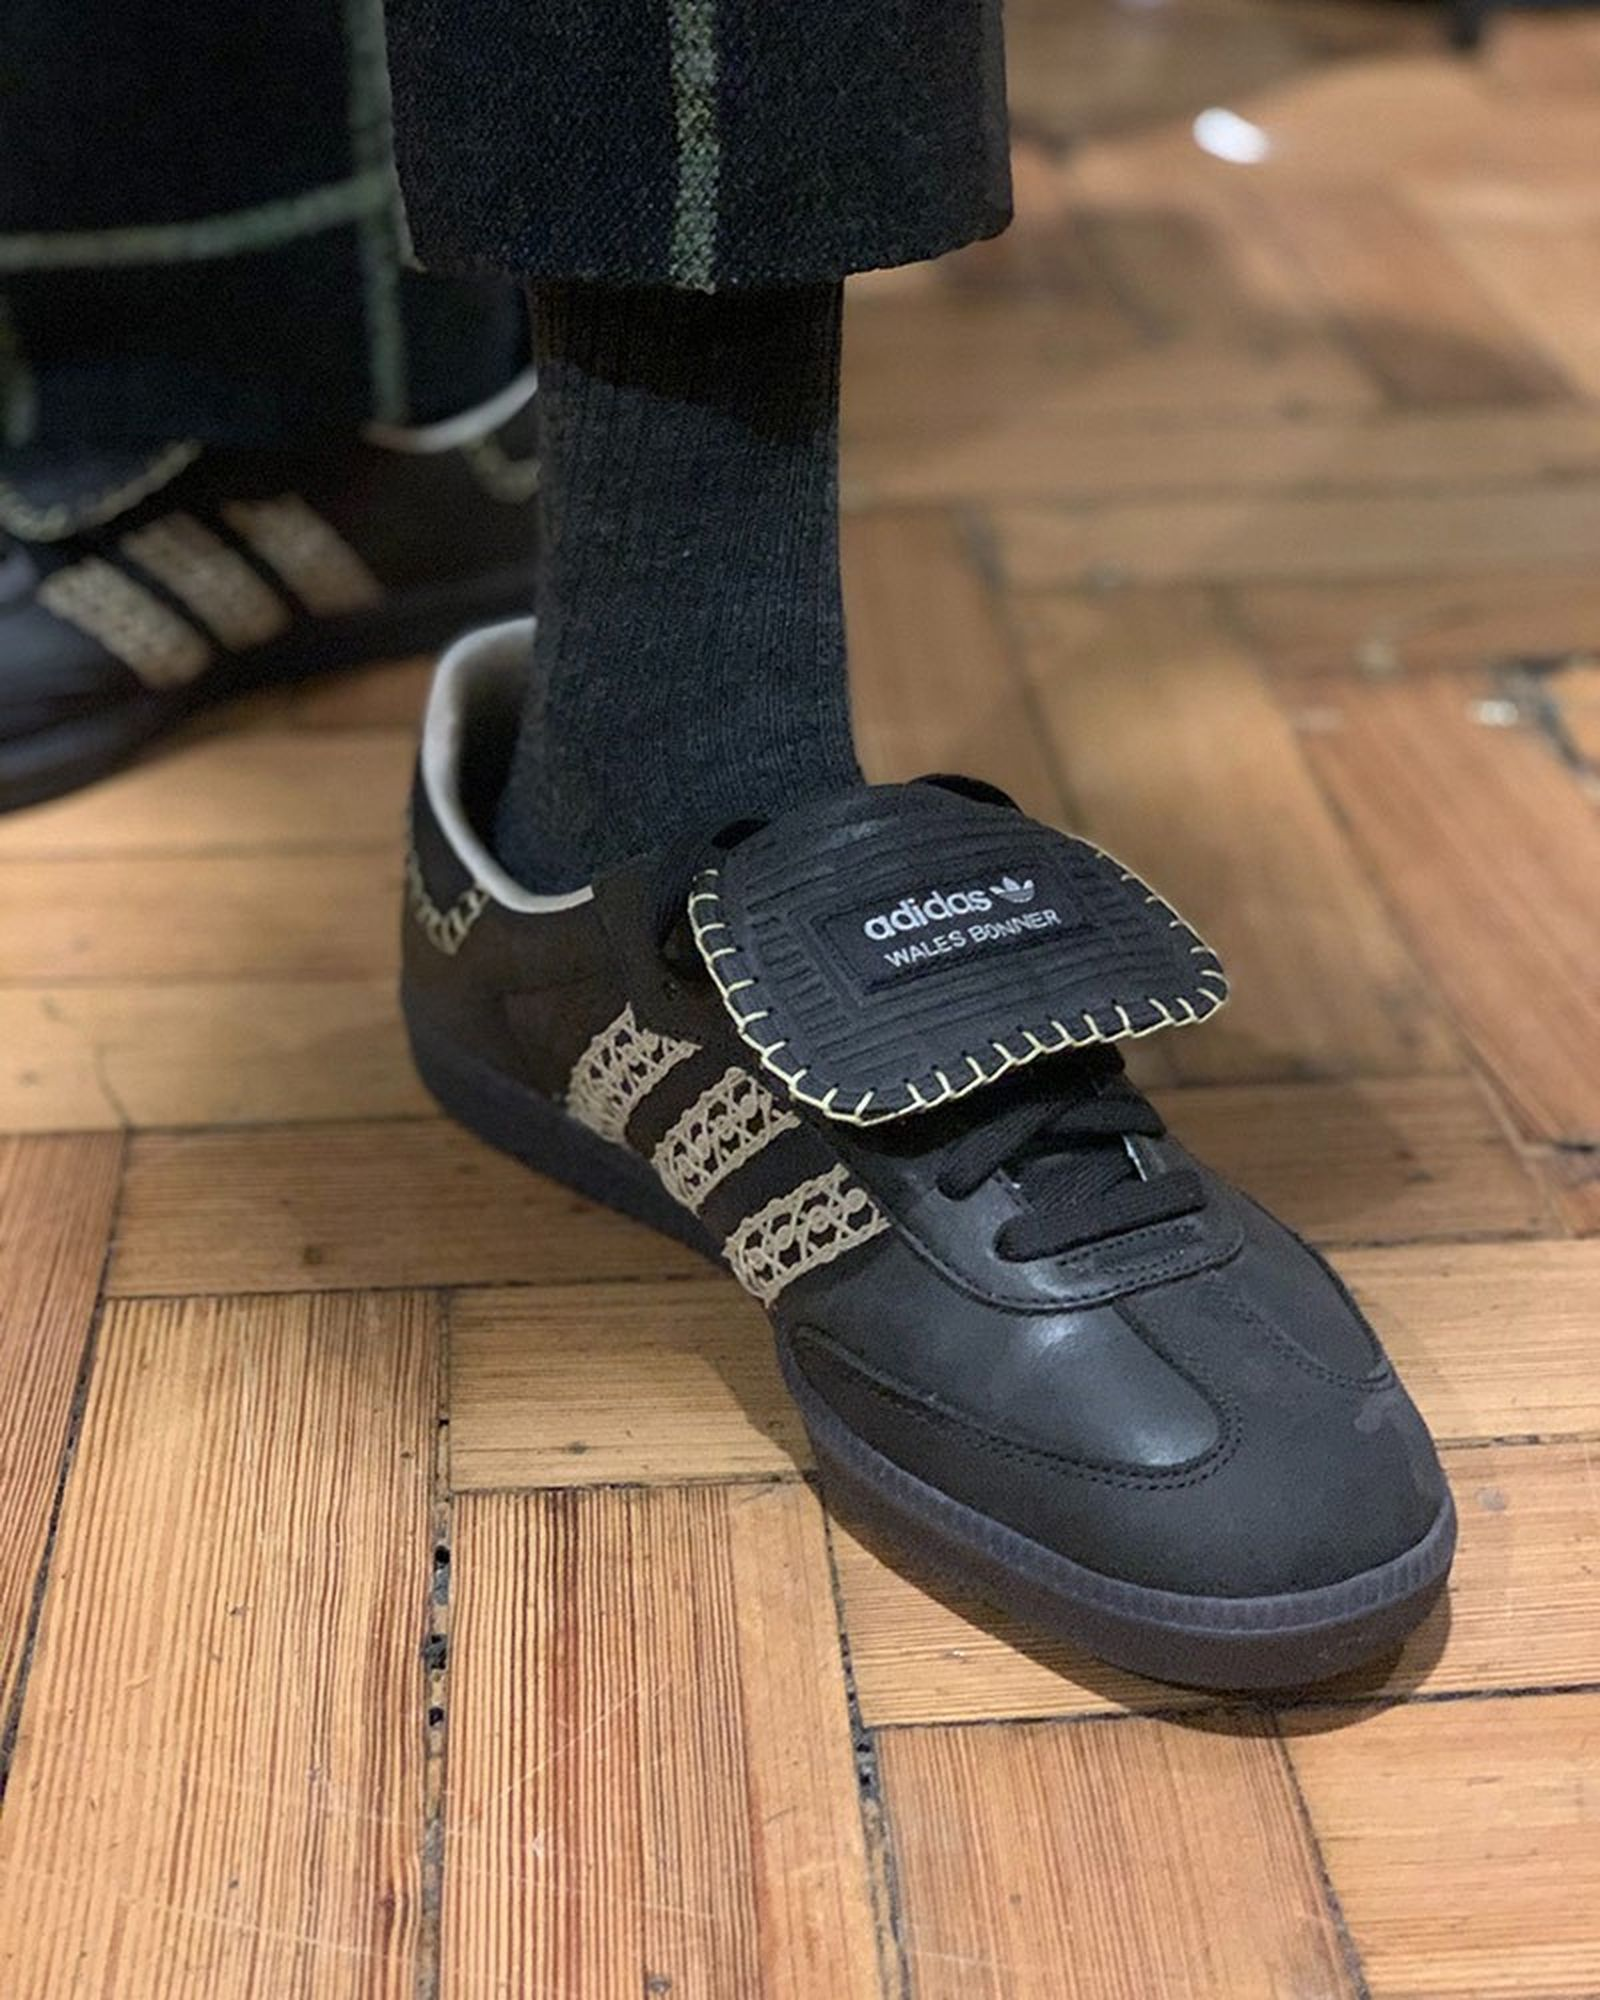 wales-bonner-adidas-collection-release-date-price-01 (1)